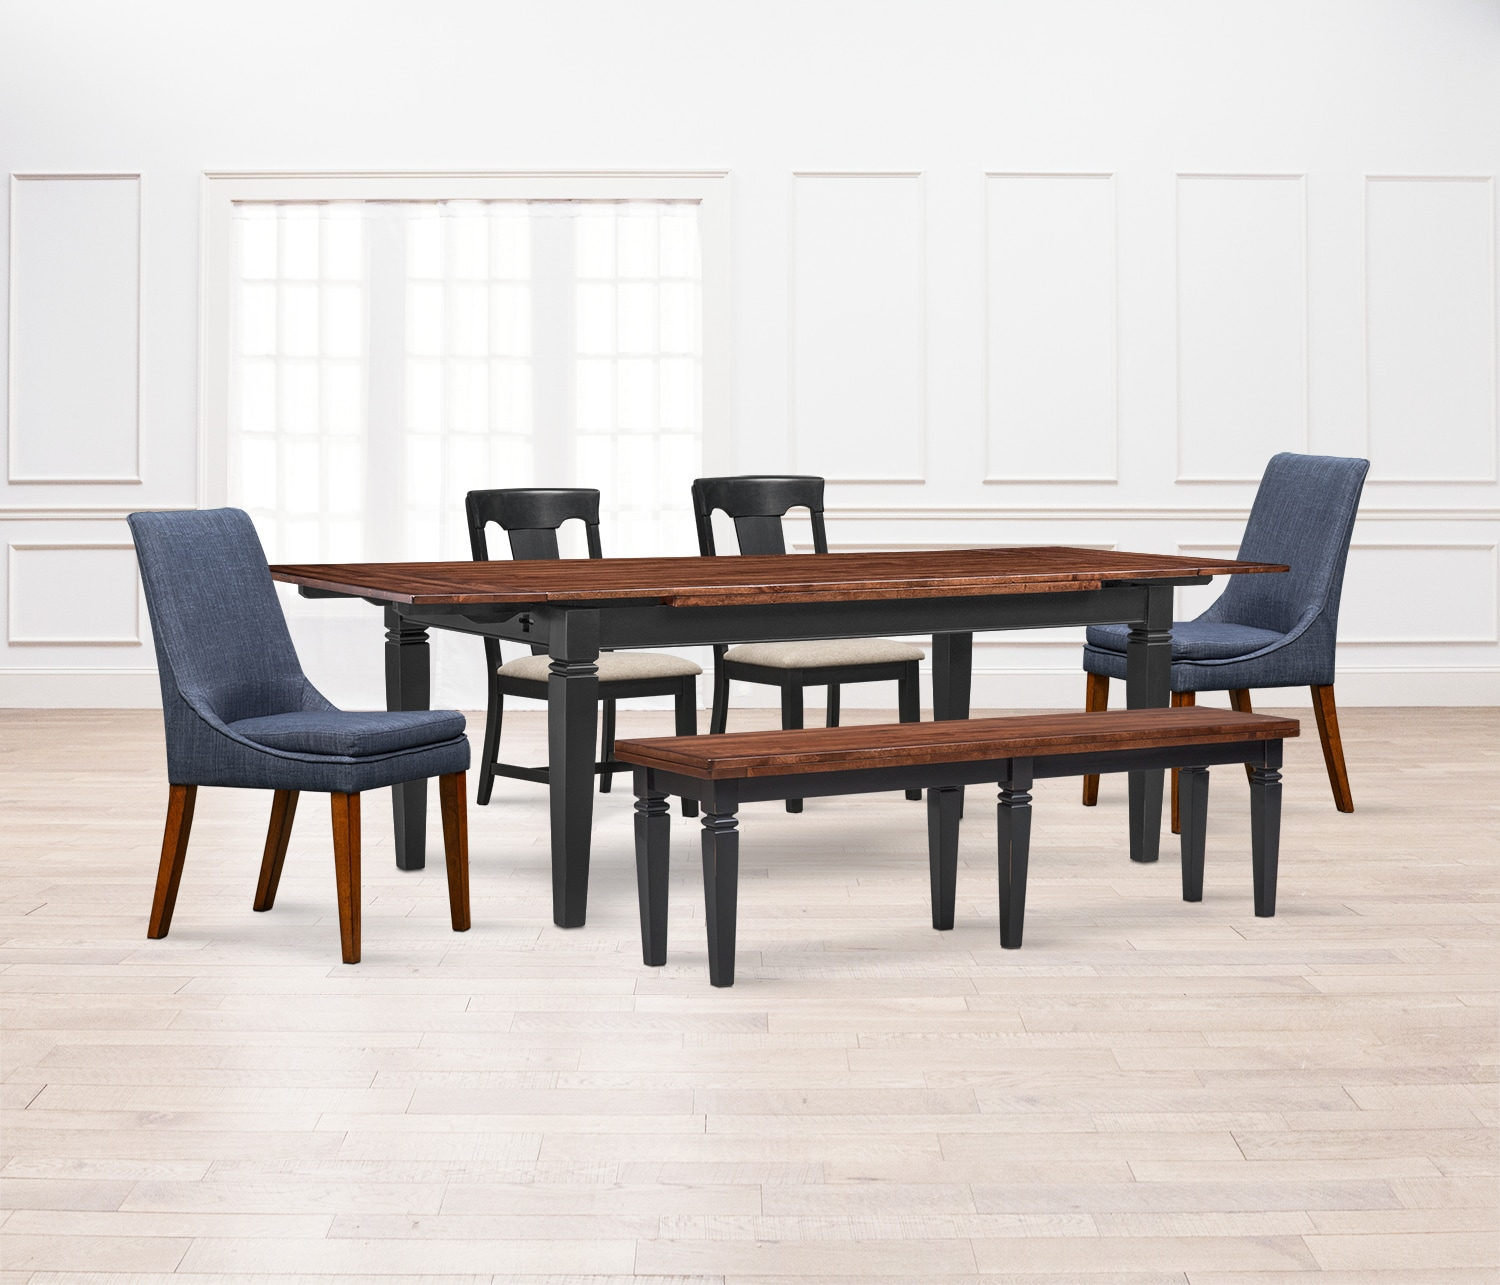 Adler Dining Table 2 Side Chairs 2 Upholstered Side Chairs and Bench - Black  sc 1 st  Value City Furniture & Adler Dining Table 2 Side Chairs 2 Upholstered Side Chairs and ...